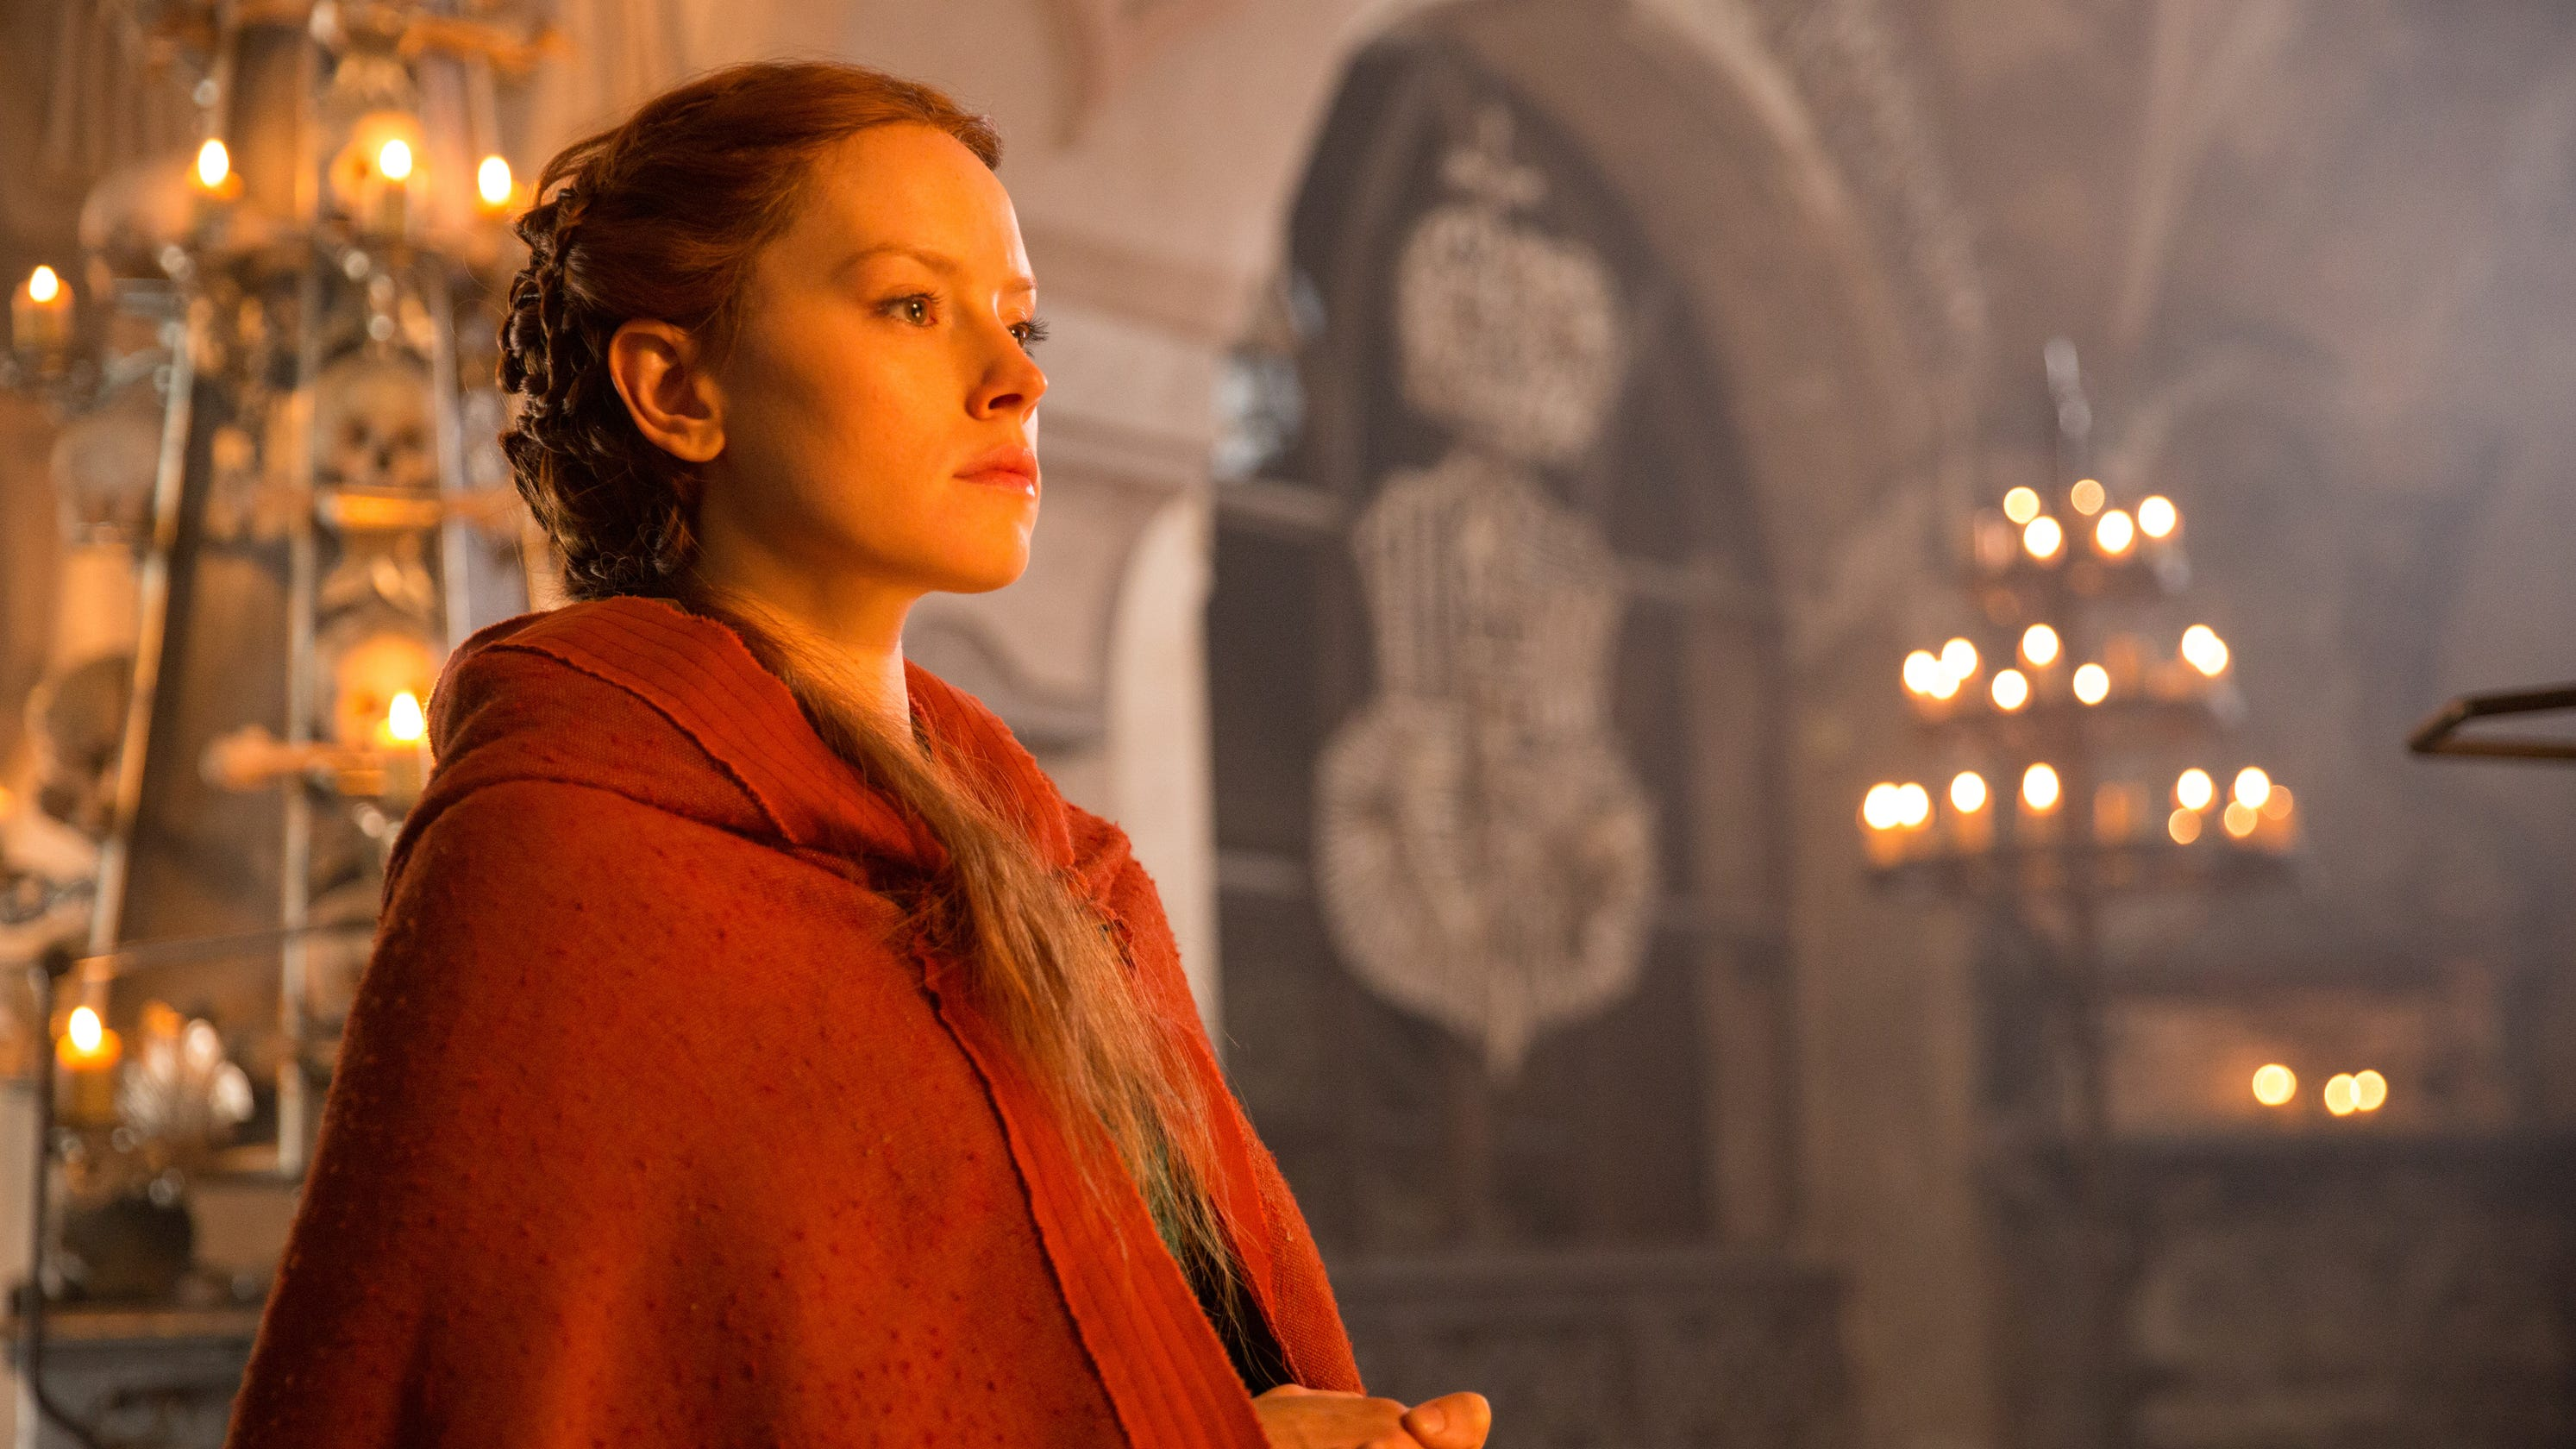 Ophelia Shakespeare: 'Star Wars' Actress Daisy Ridley Goes Shakespeare In